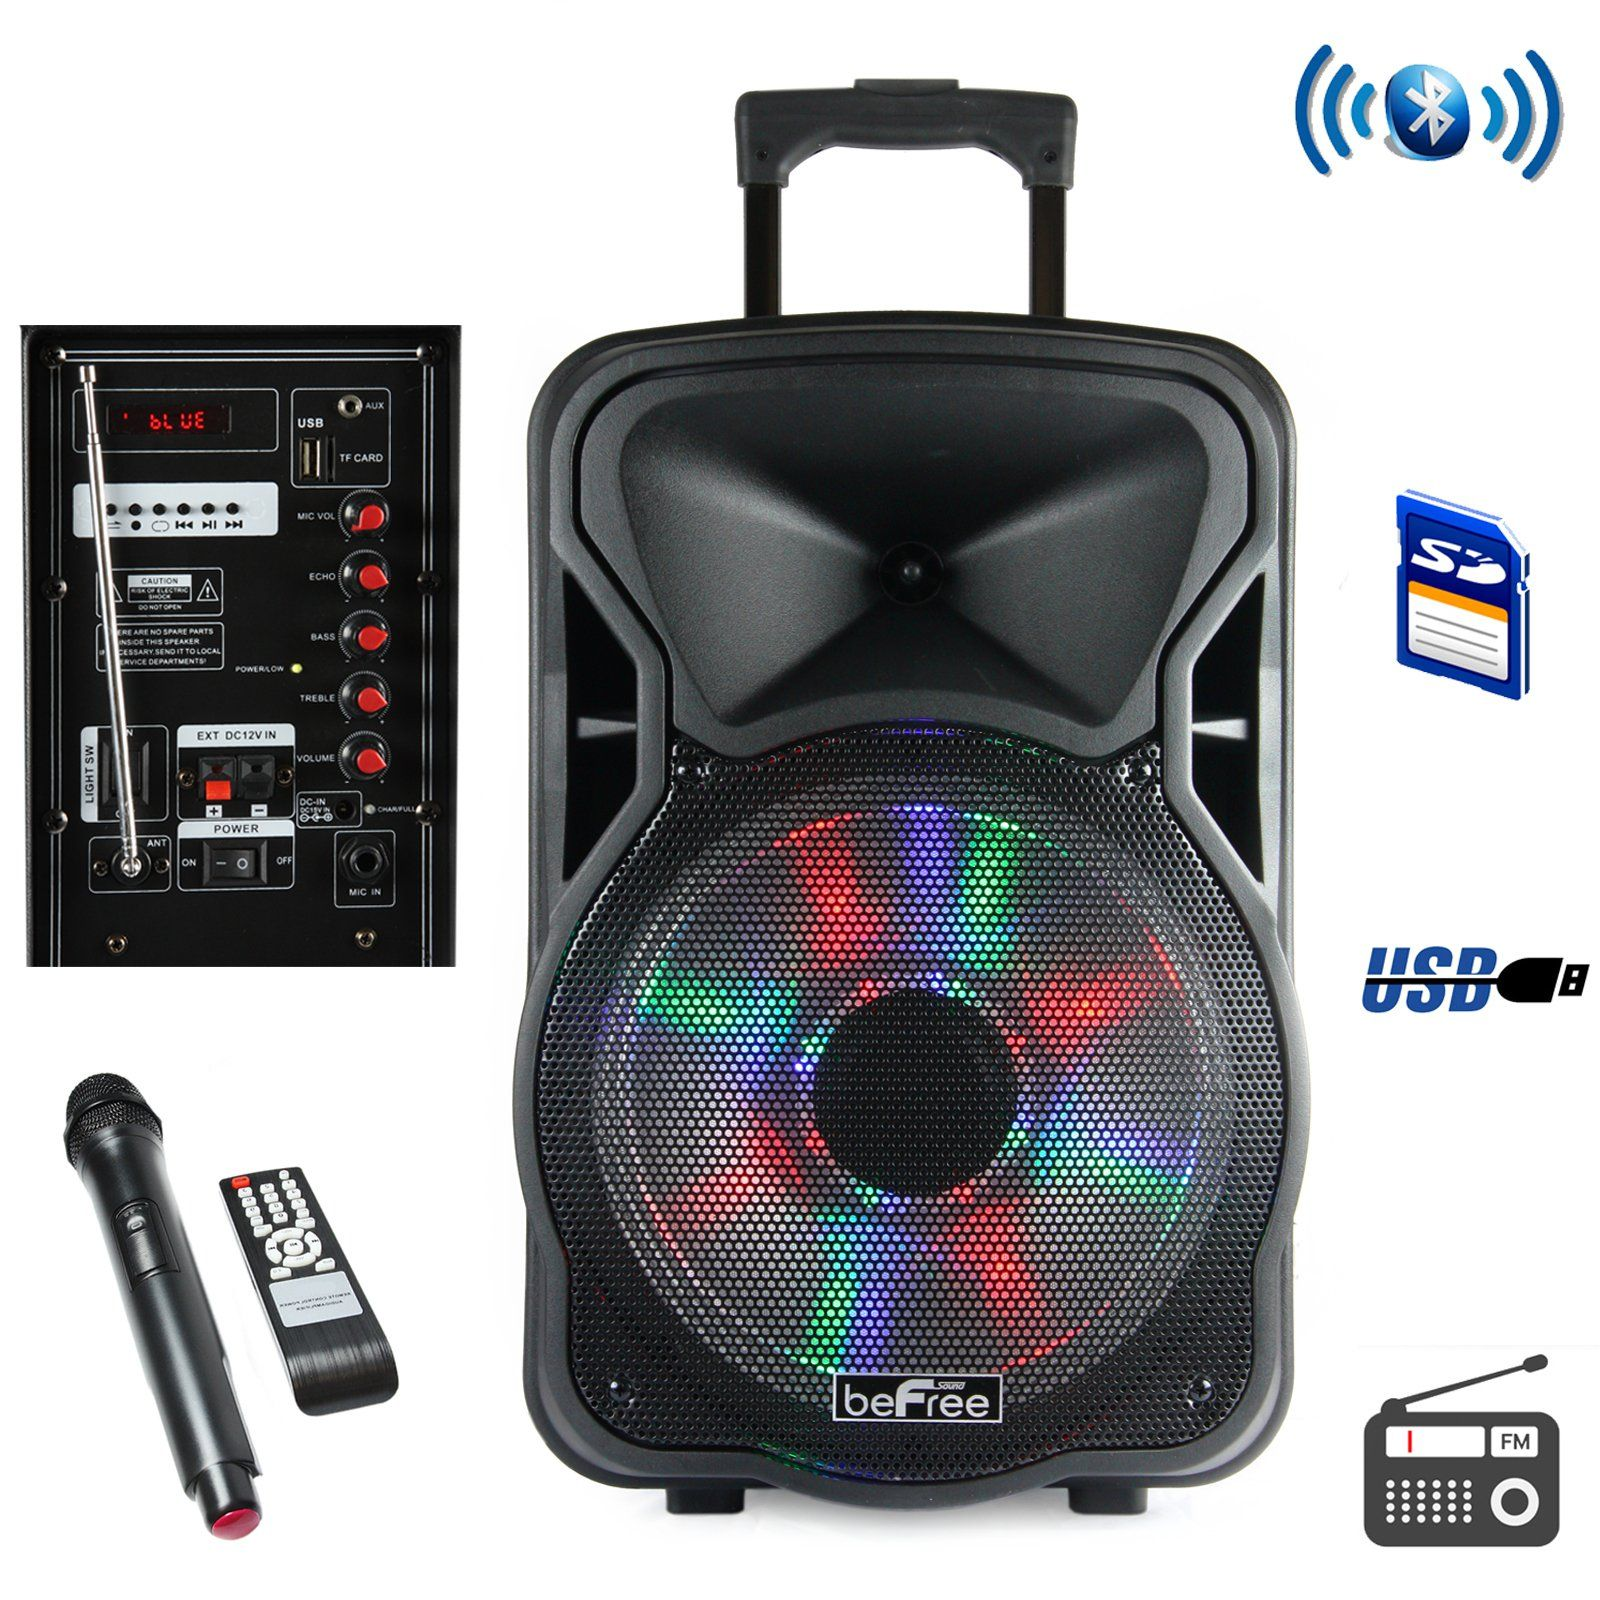 0d4e8ded10b4b8199534ad31bddfe664 Top Result 50 New Loudest Portable Speakers